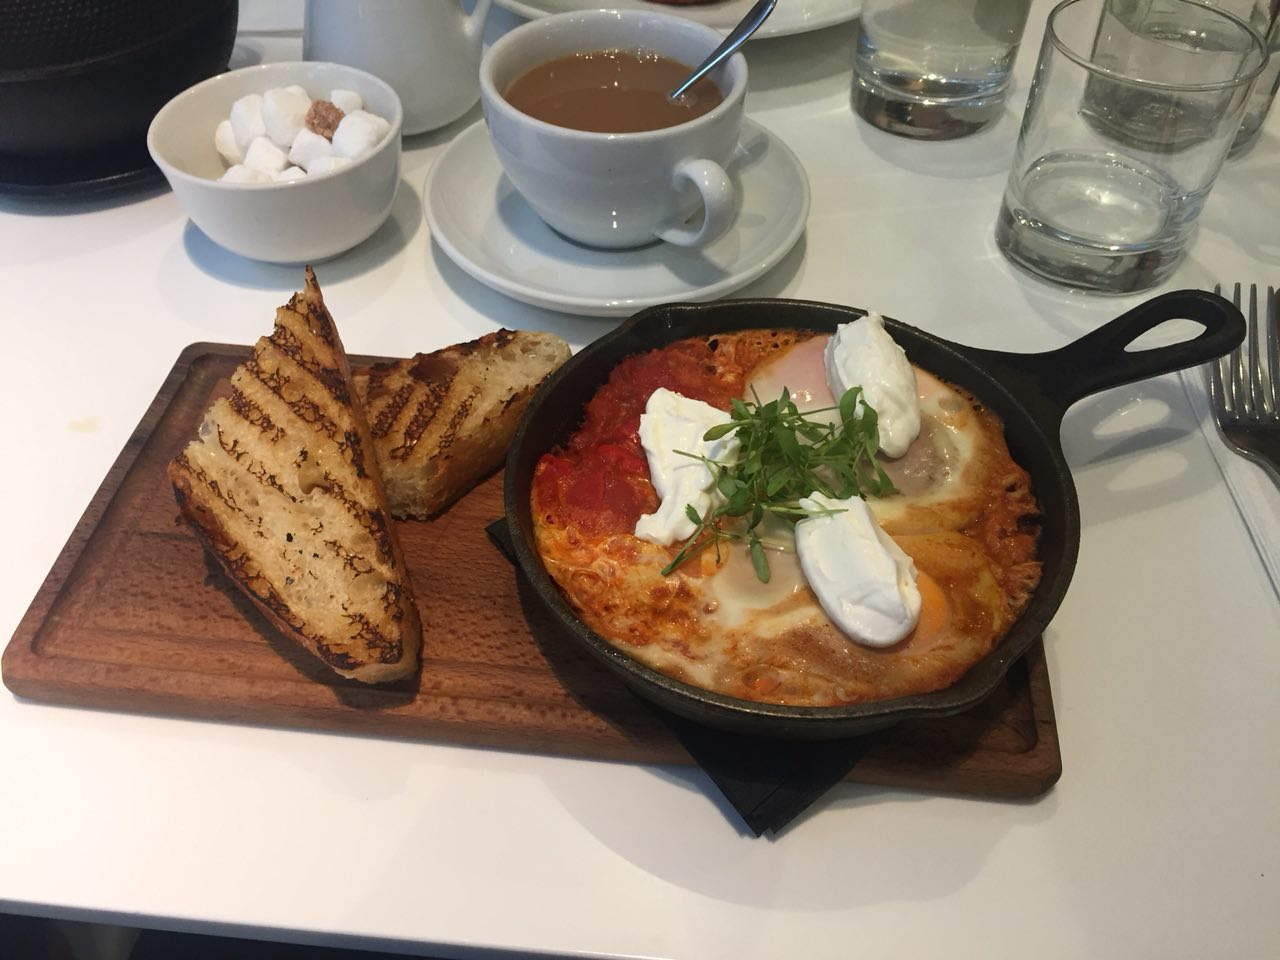 Ed's shakshuka (and tea!) at Ottolenghi